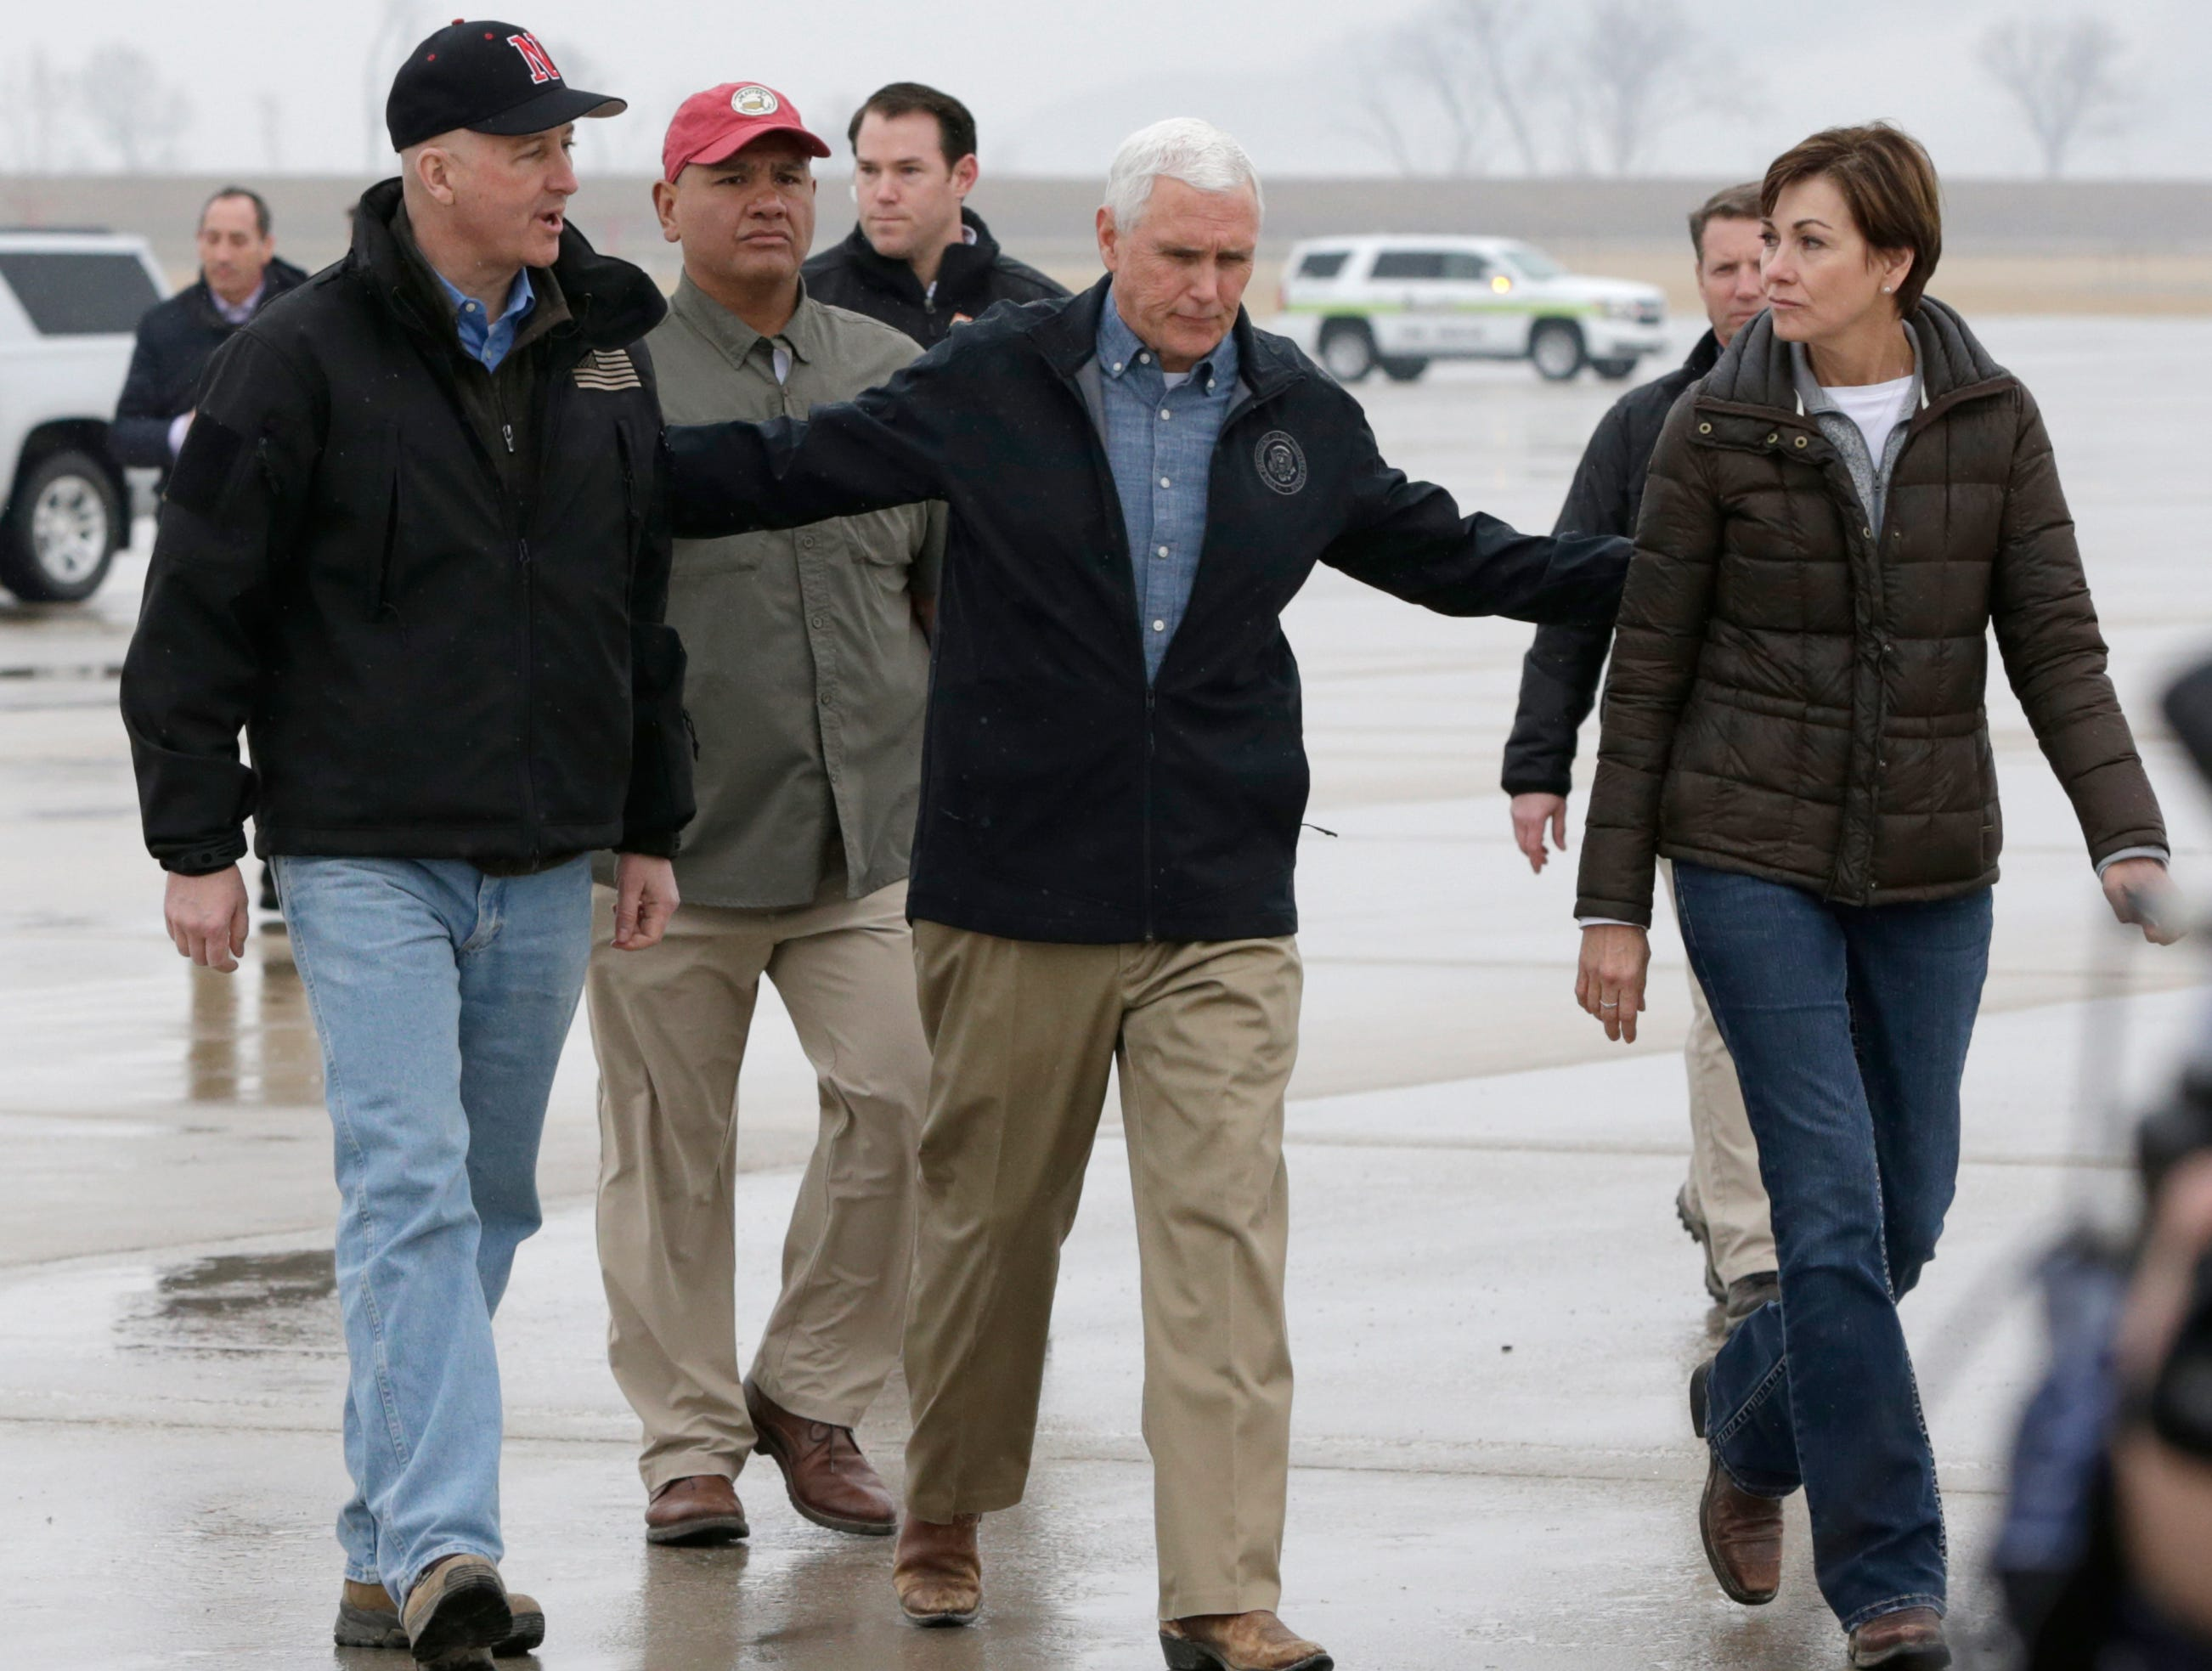 Vice President Mike Pence, center, is accompanied by Neb. Gov. Pete Ricketts, center, and Iowa Gov. Kim Reynolds upon his arrival in Omaha, Neb., Tuesday, March 19, 2019 to view the recent floods and offer support for it's victims.